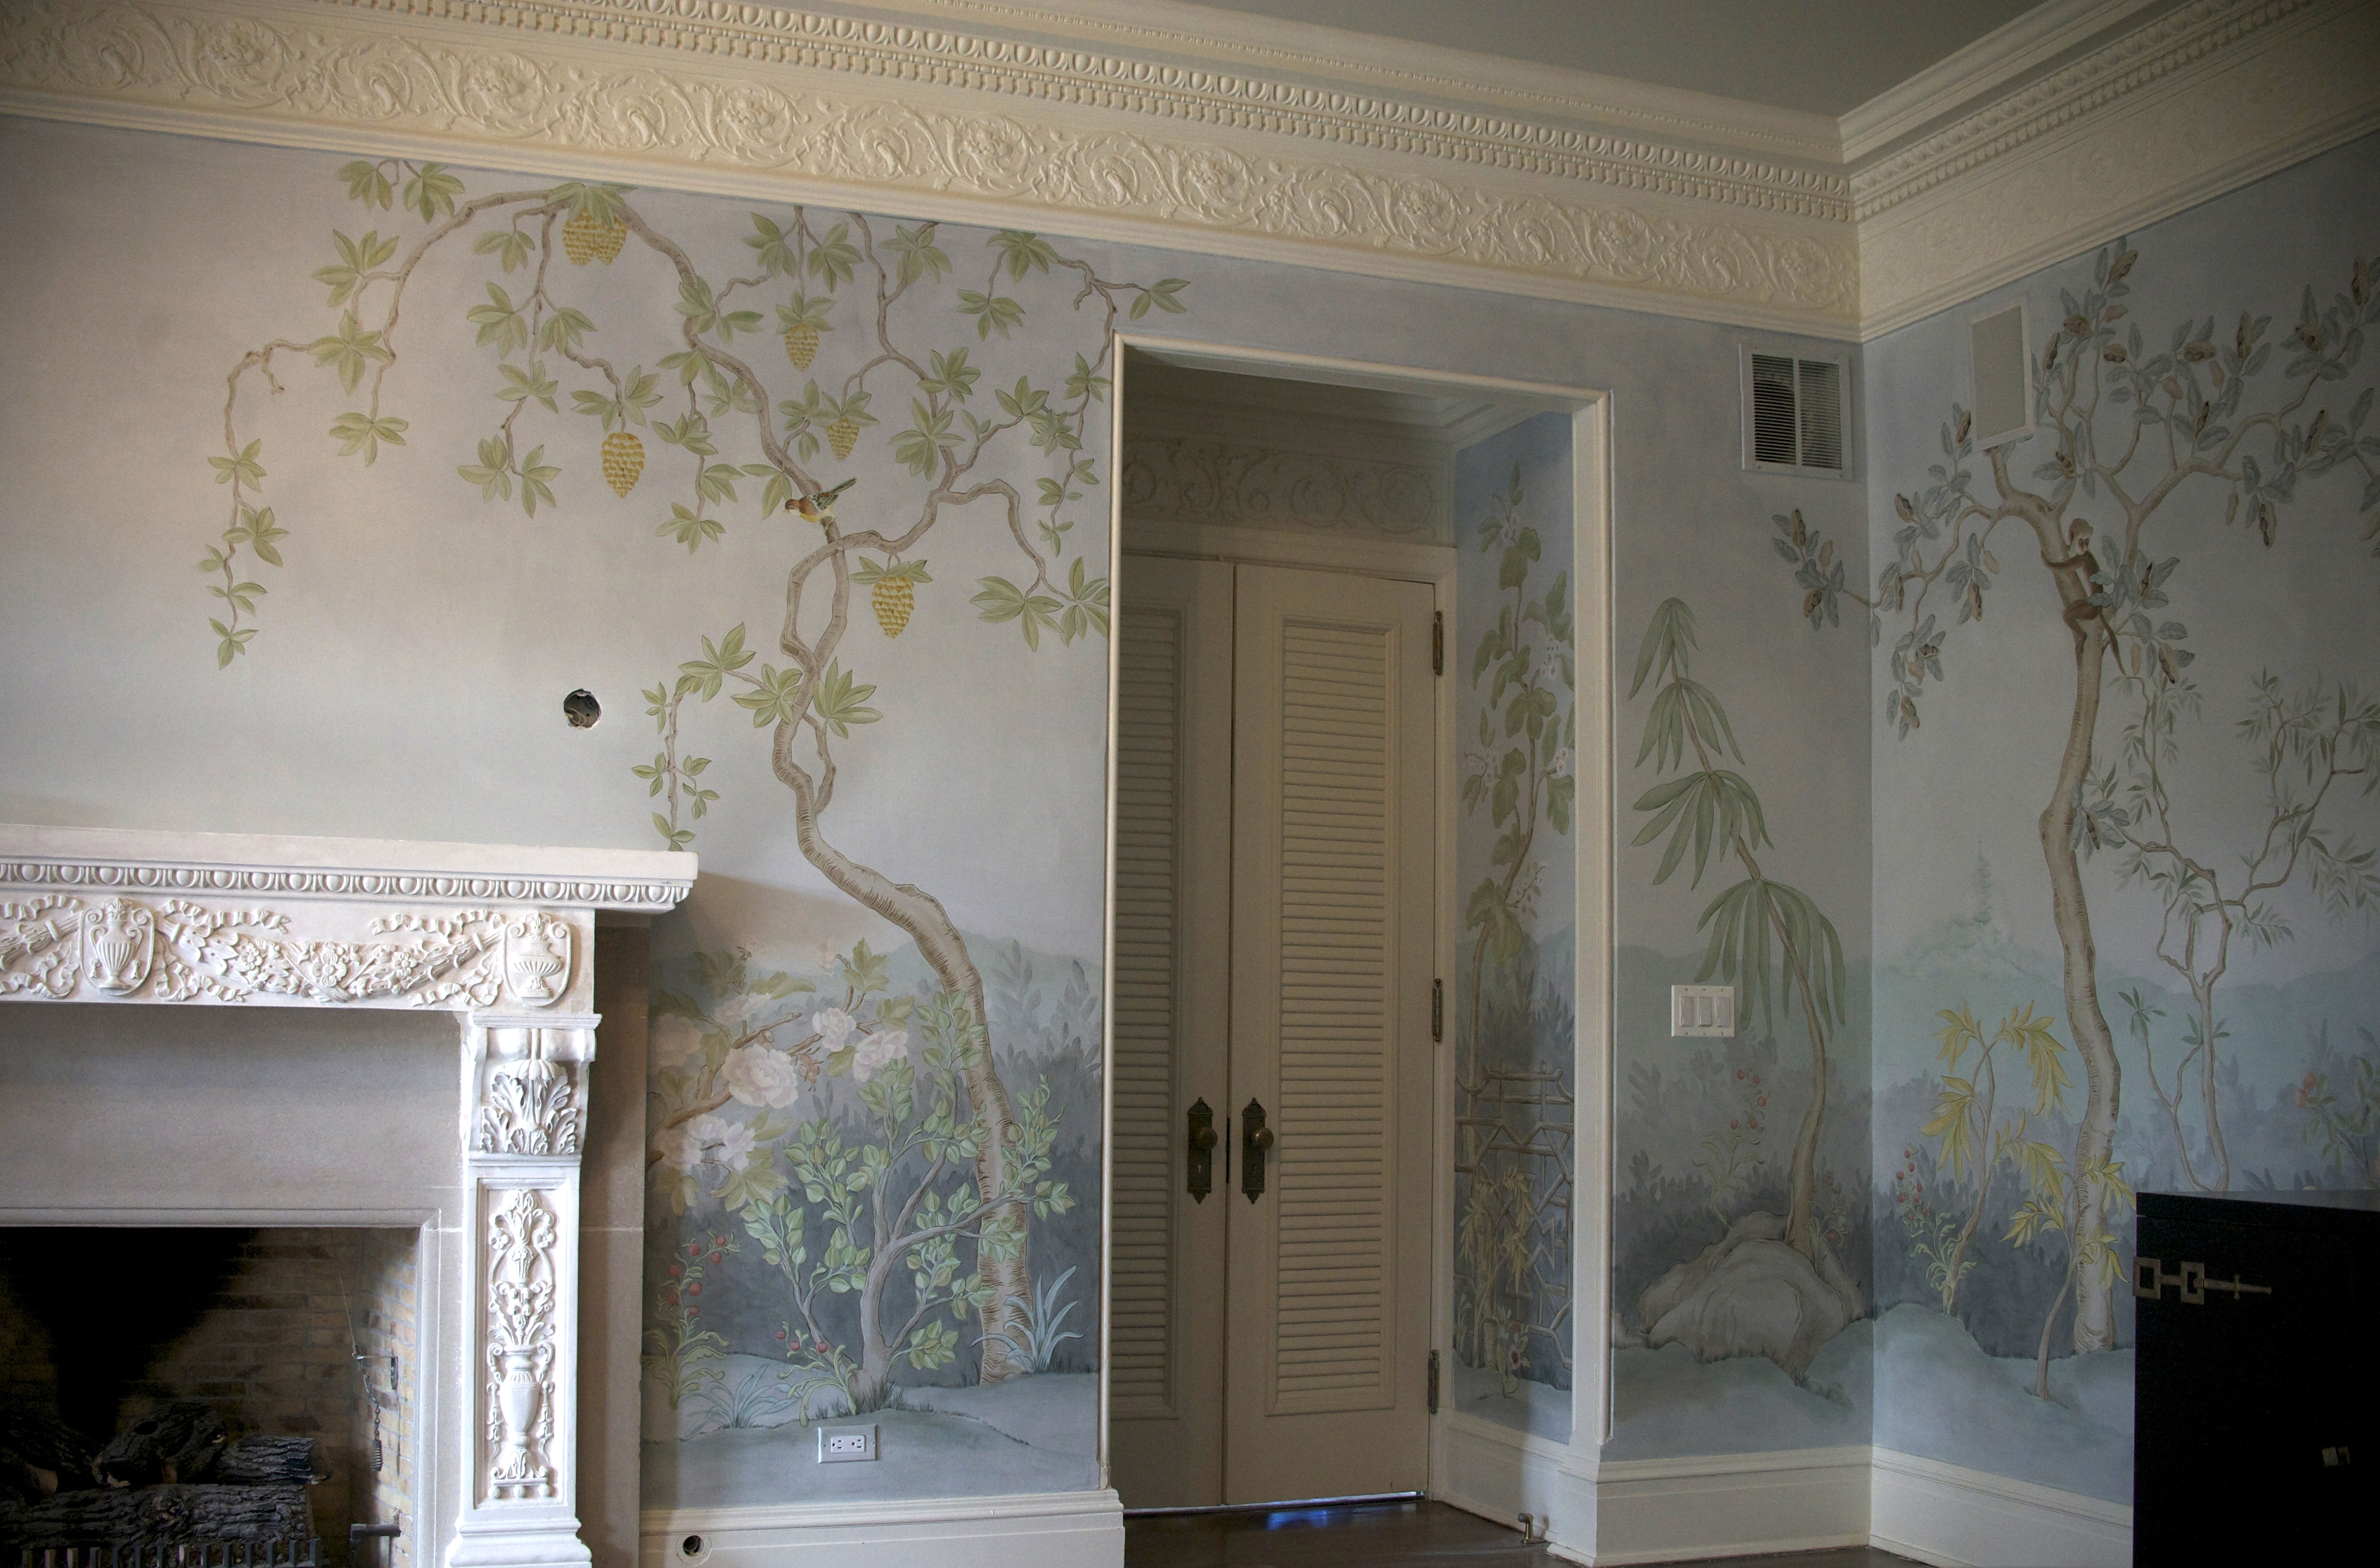 Well Known Chinoiserie Mural – Allison Cosmos Inside Chinoiserie Wall Art (View 13 of 15)